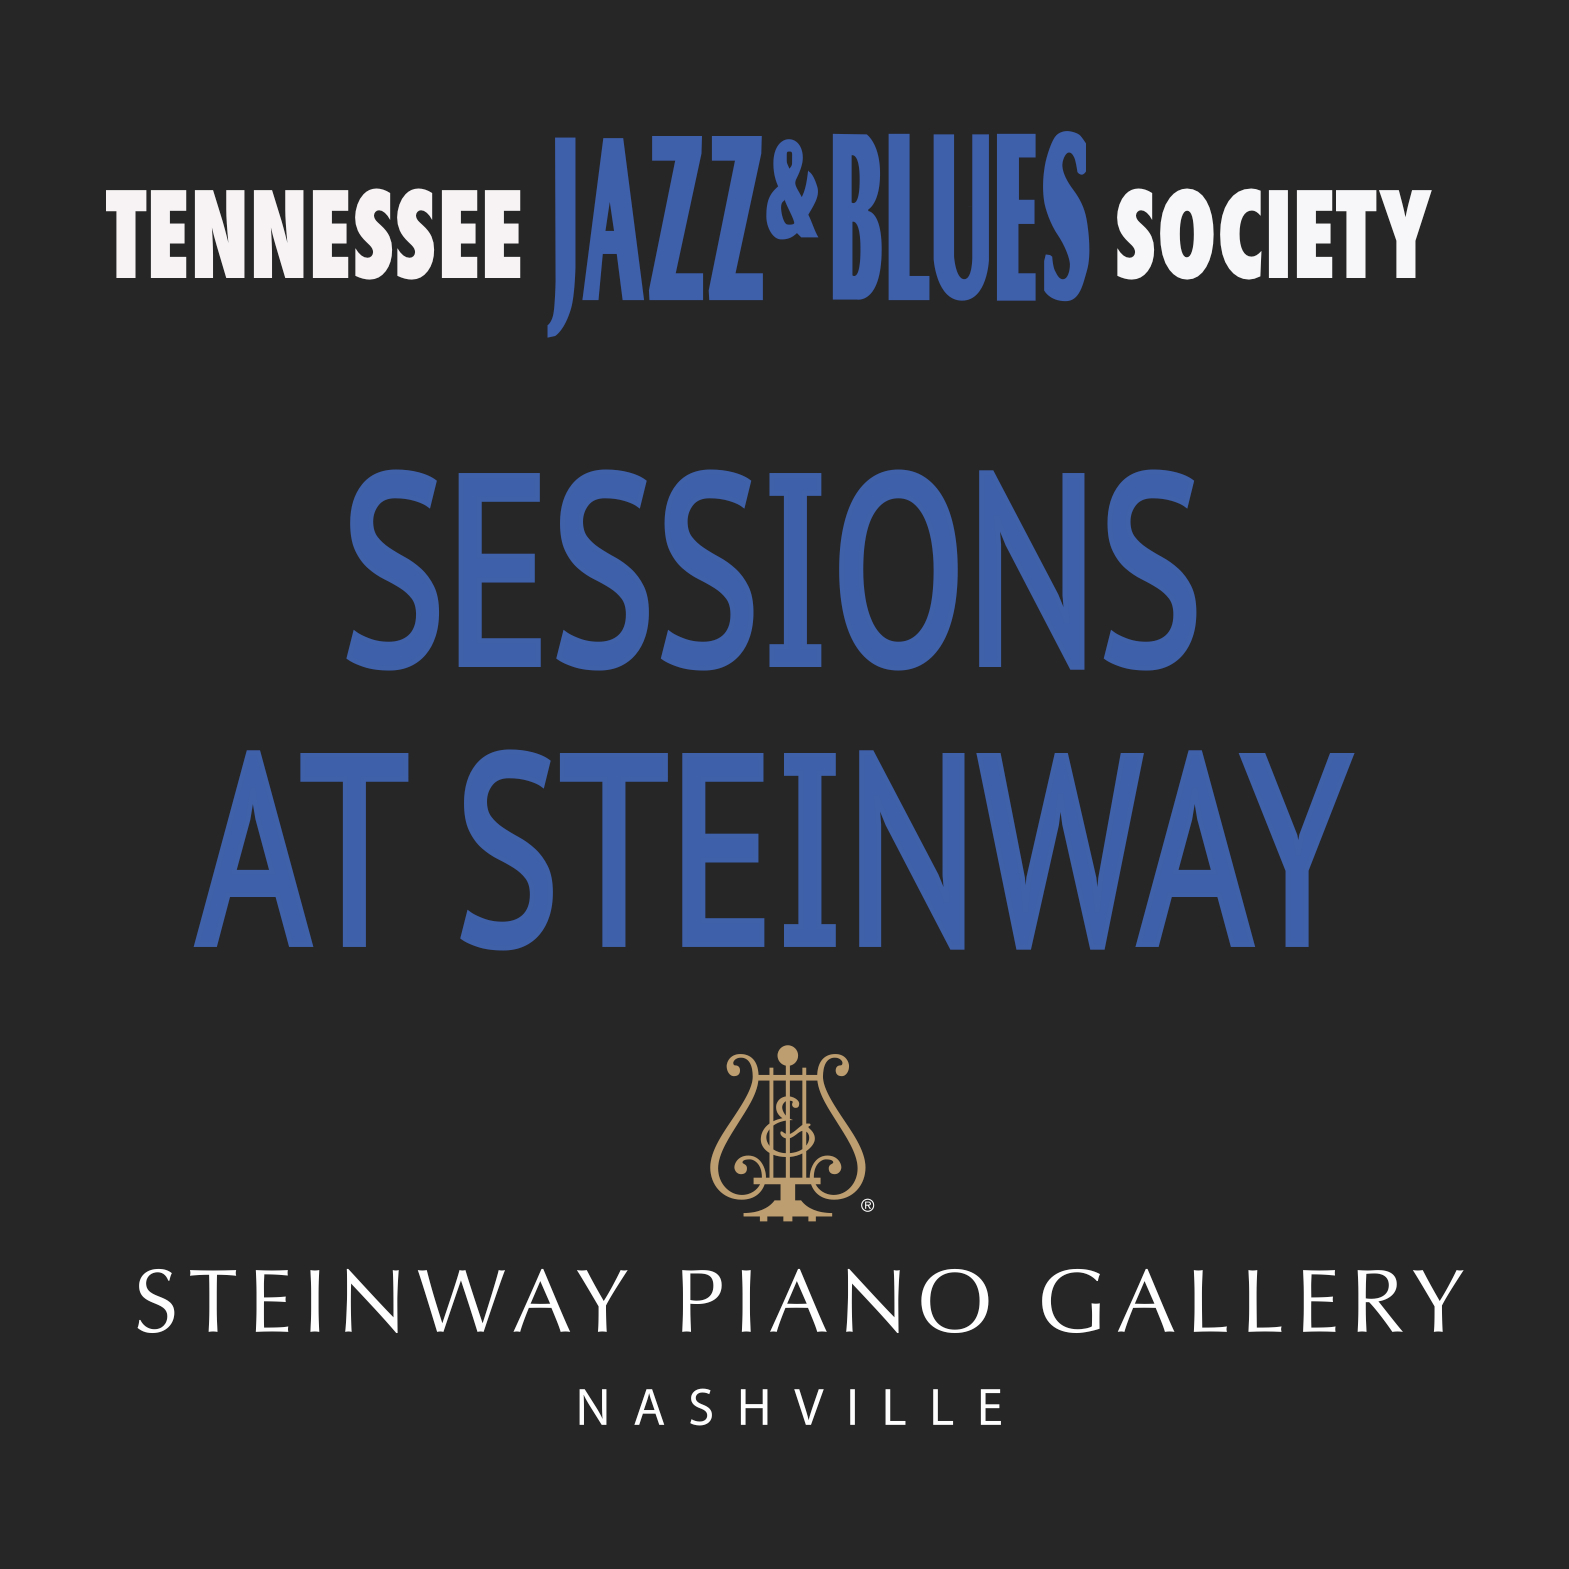 TJBS Sessions at Steinway